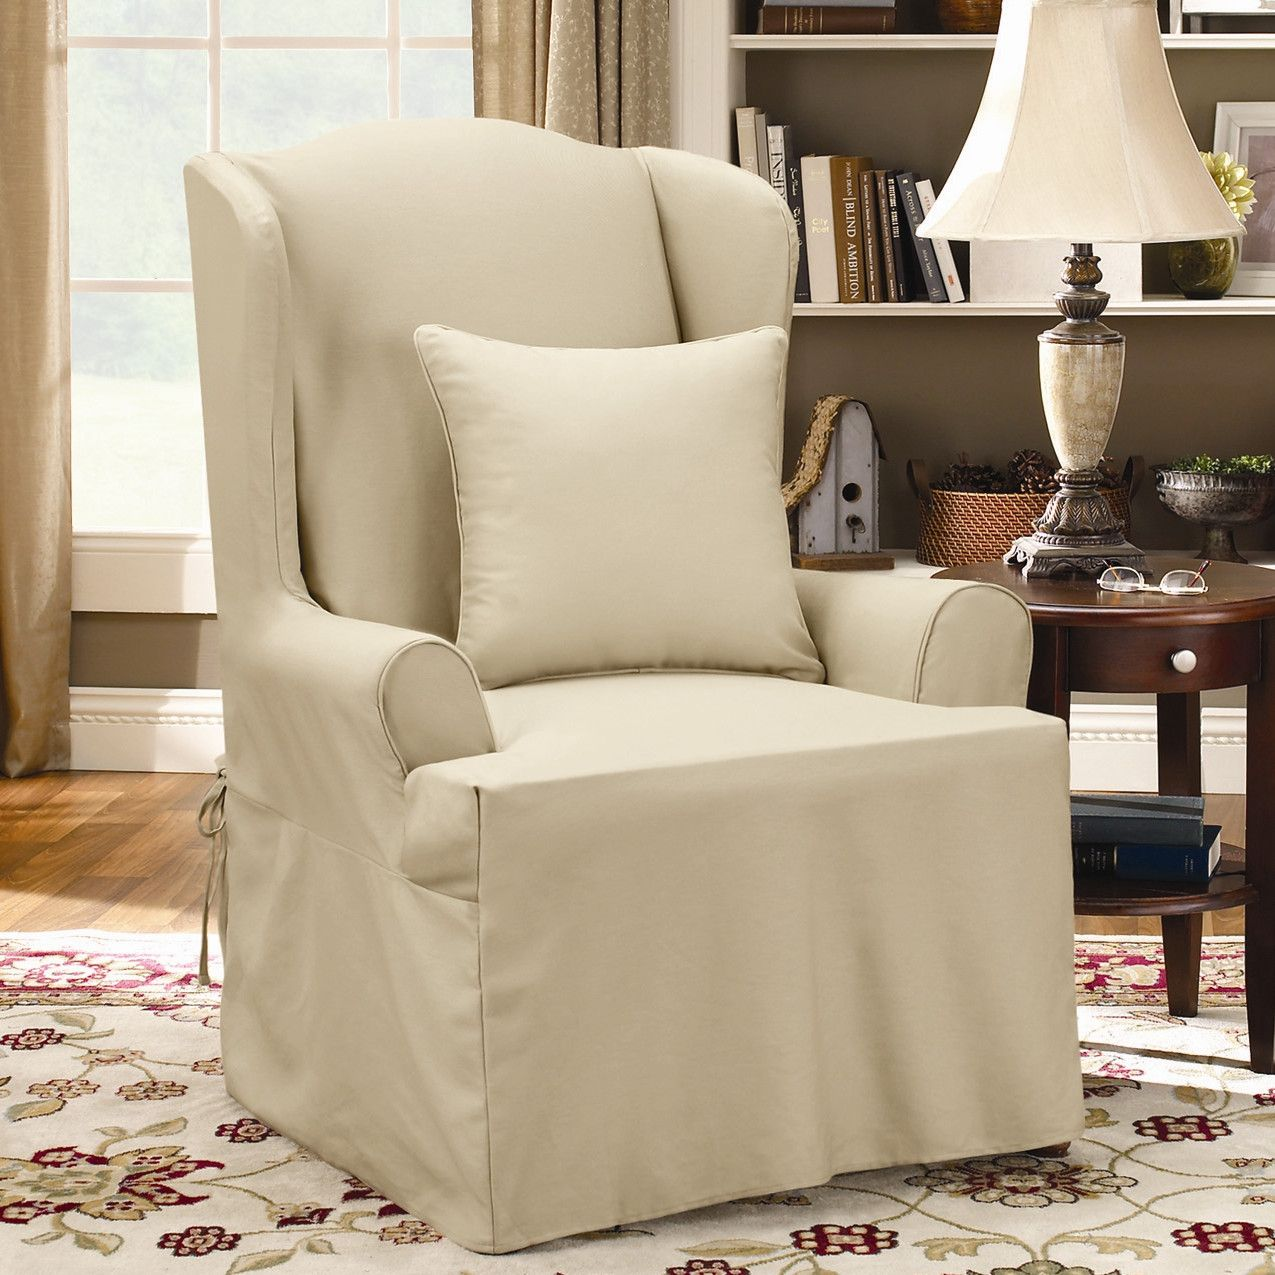 Sure-Fit Twill Supreme Wing Chair Slipcover | Winged chair ...